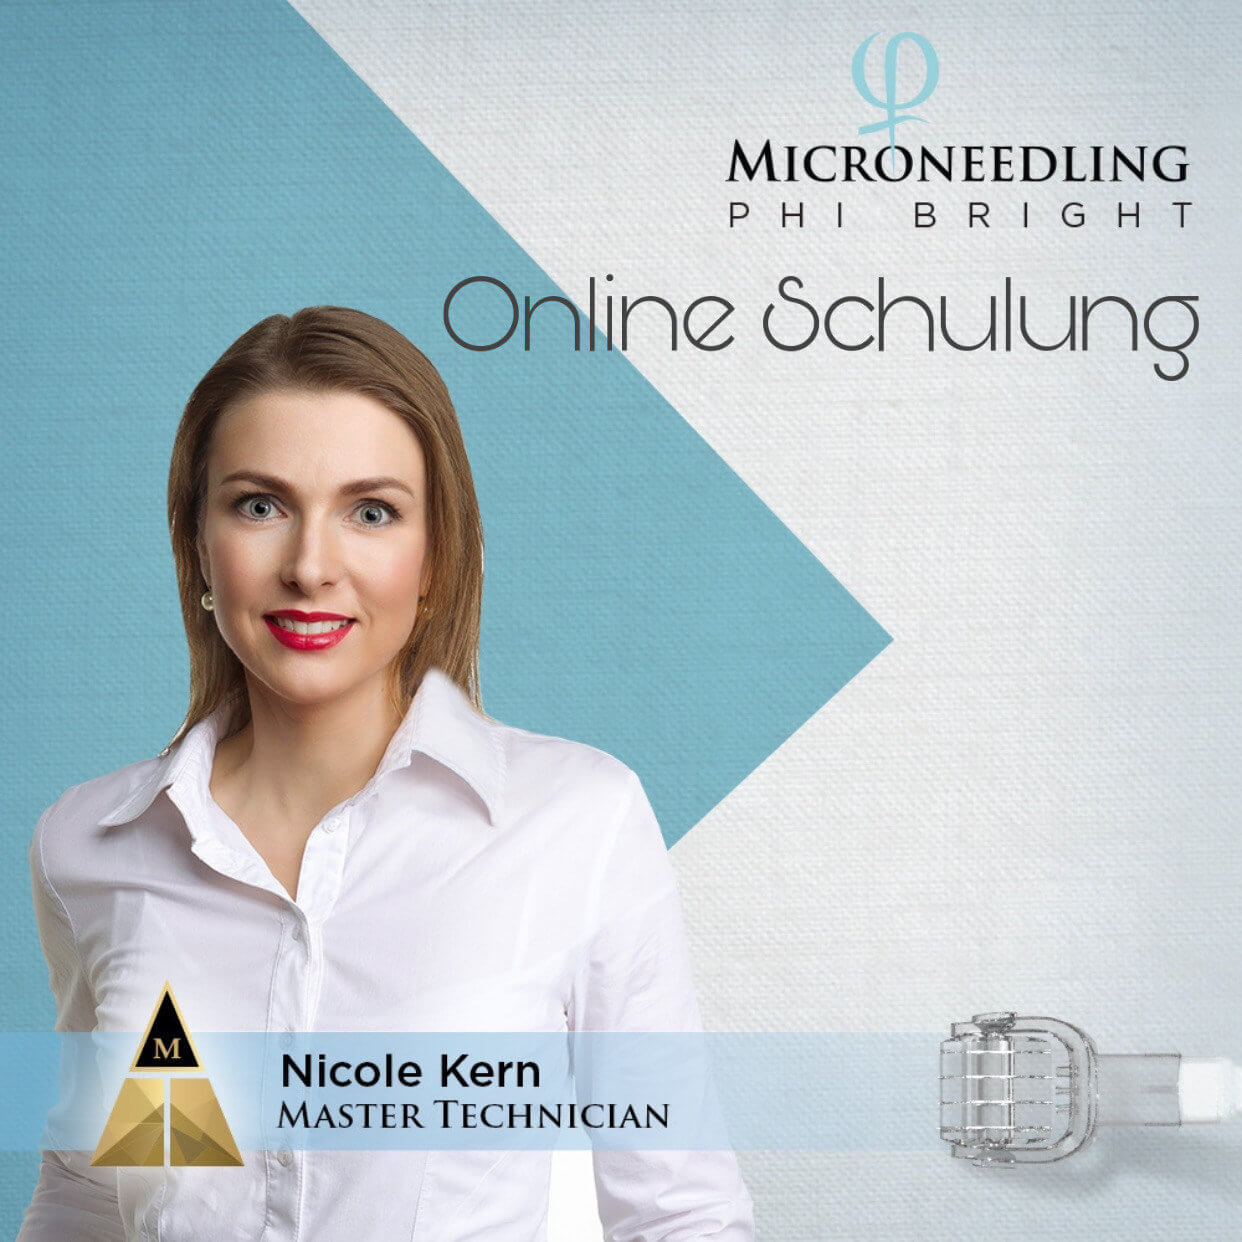 Microneedling PhiBright Schulung